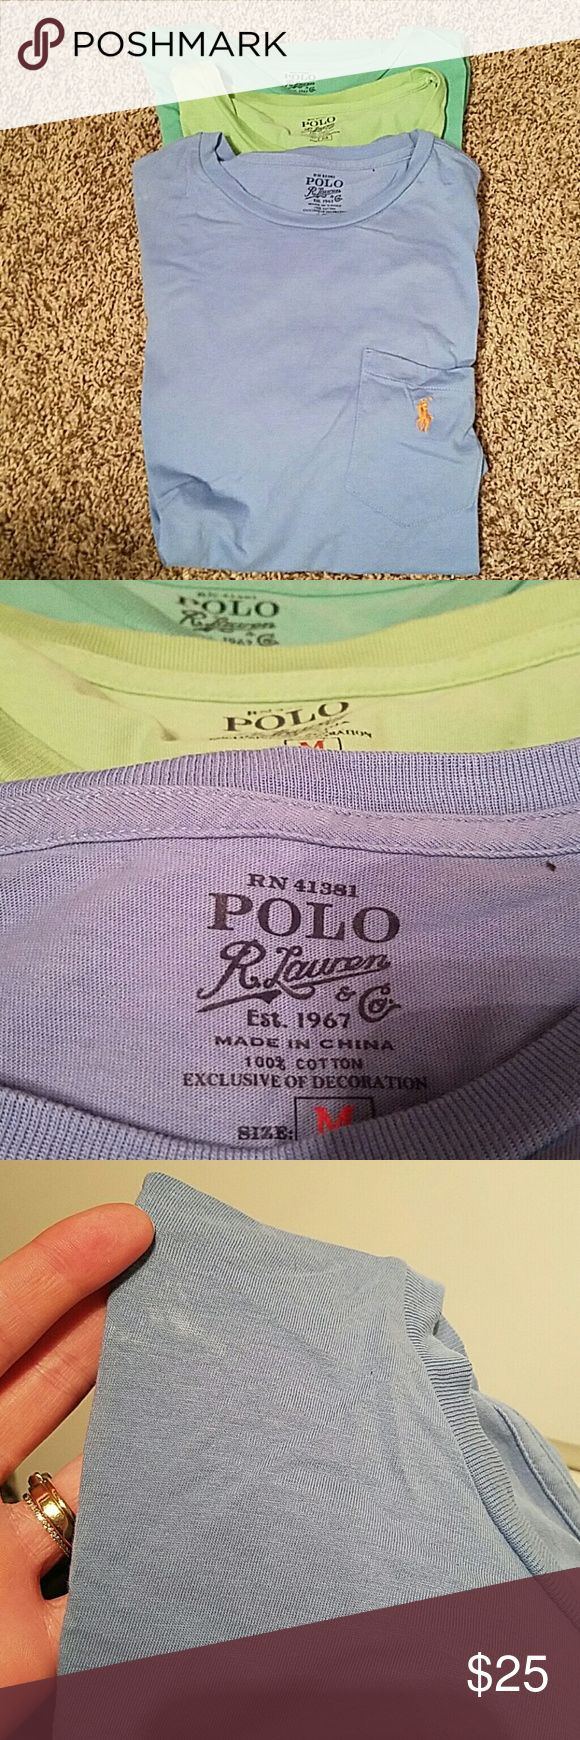 Lot of 3 Men's Ralph Lauren Polo Tee Shirts 3 Ralph Lauren Polo Tees  in lime green, sea foam and light blue. Worn a few times. Minor imperfections pictured above. My husband hated the neck lines on them. You can have all 3 for price listed or best offer. Polo by Ralph Lauren Shirts Tees - Short Sleeve